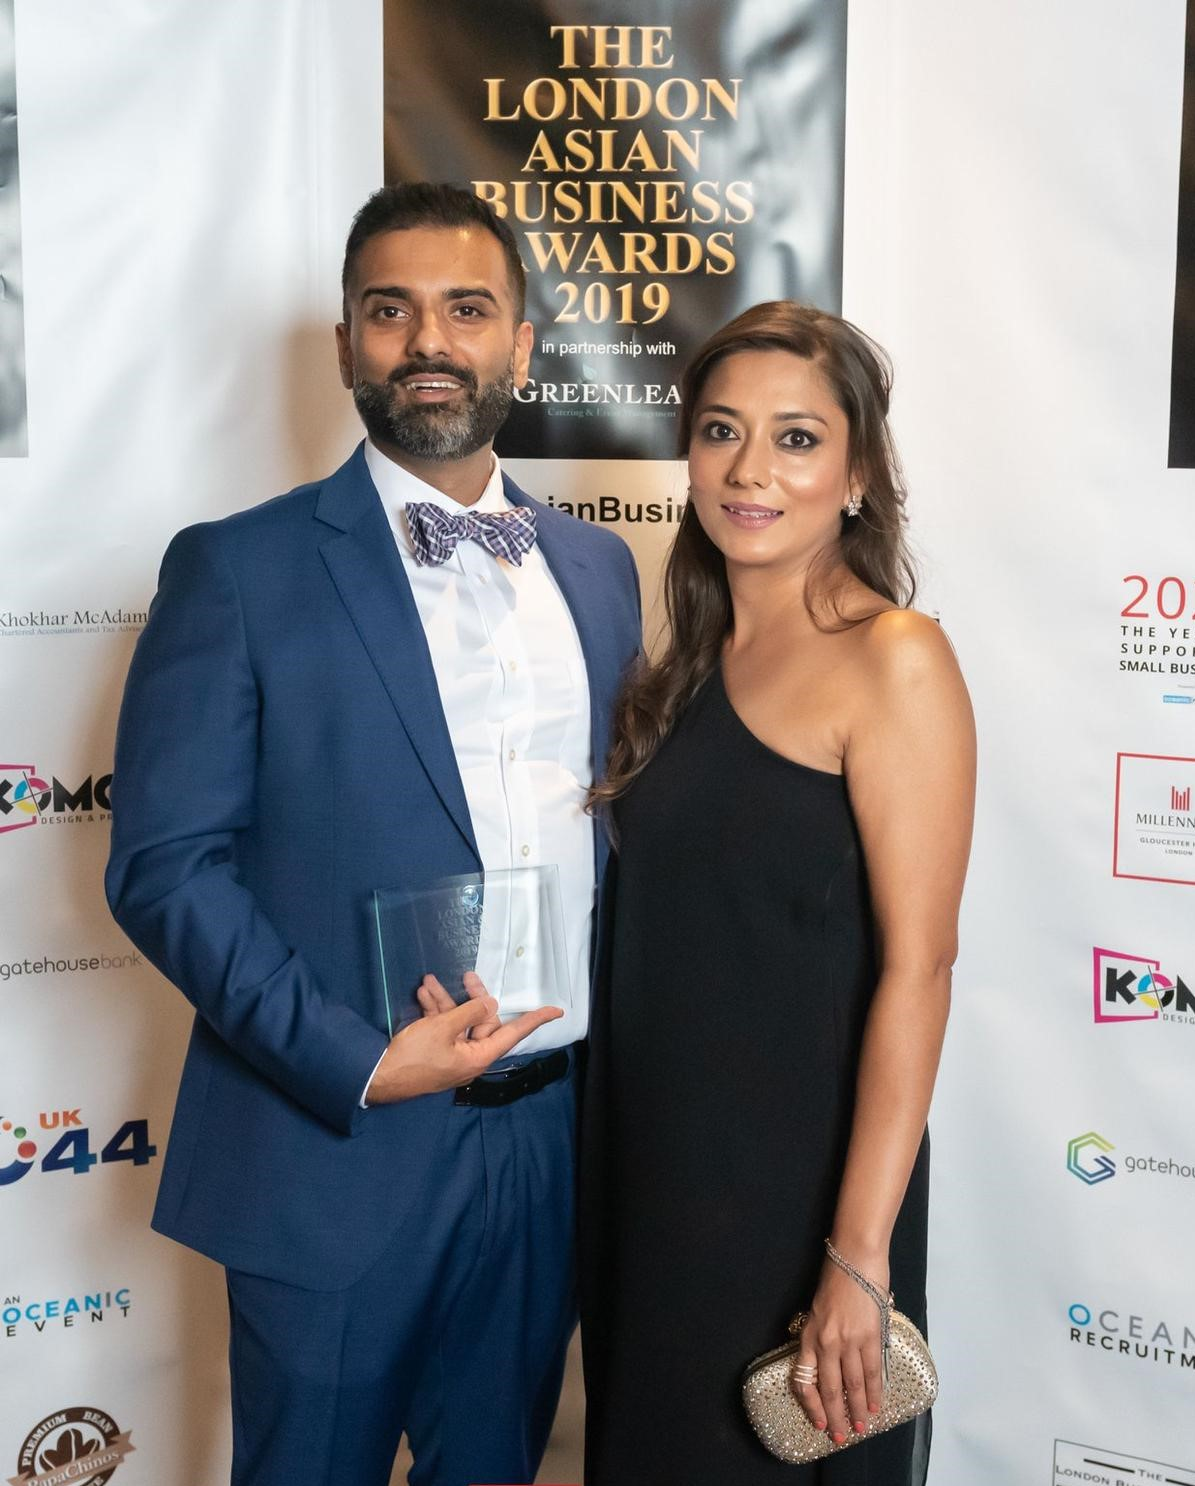 Aqib Fayyaz and Aida Khan at Asian Business Awards